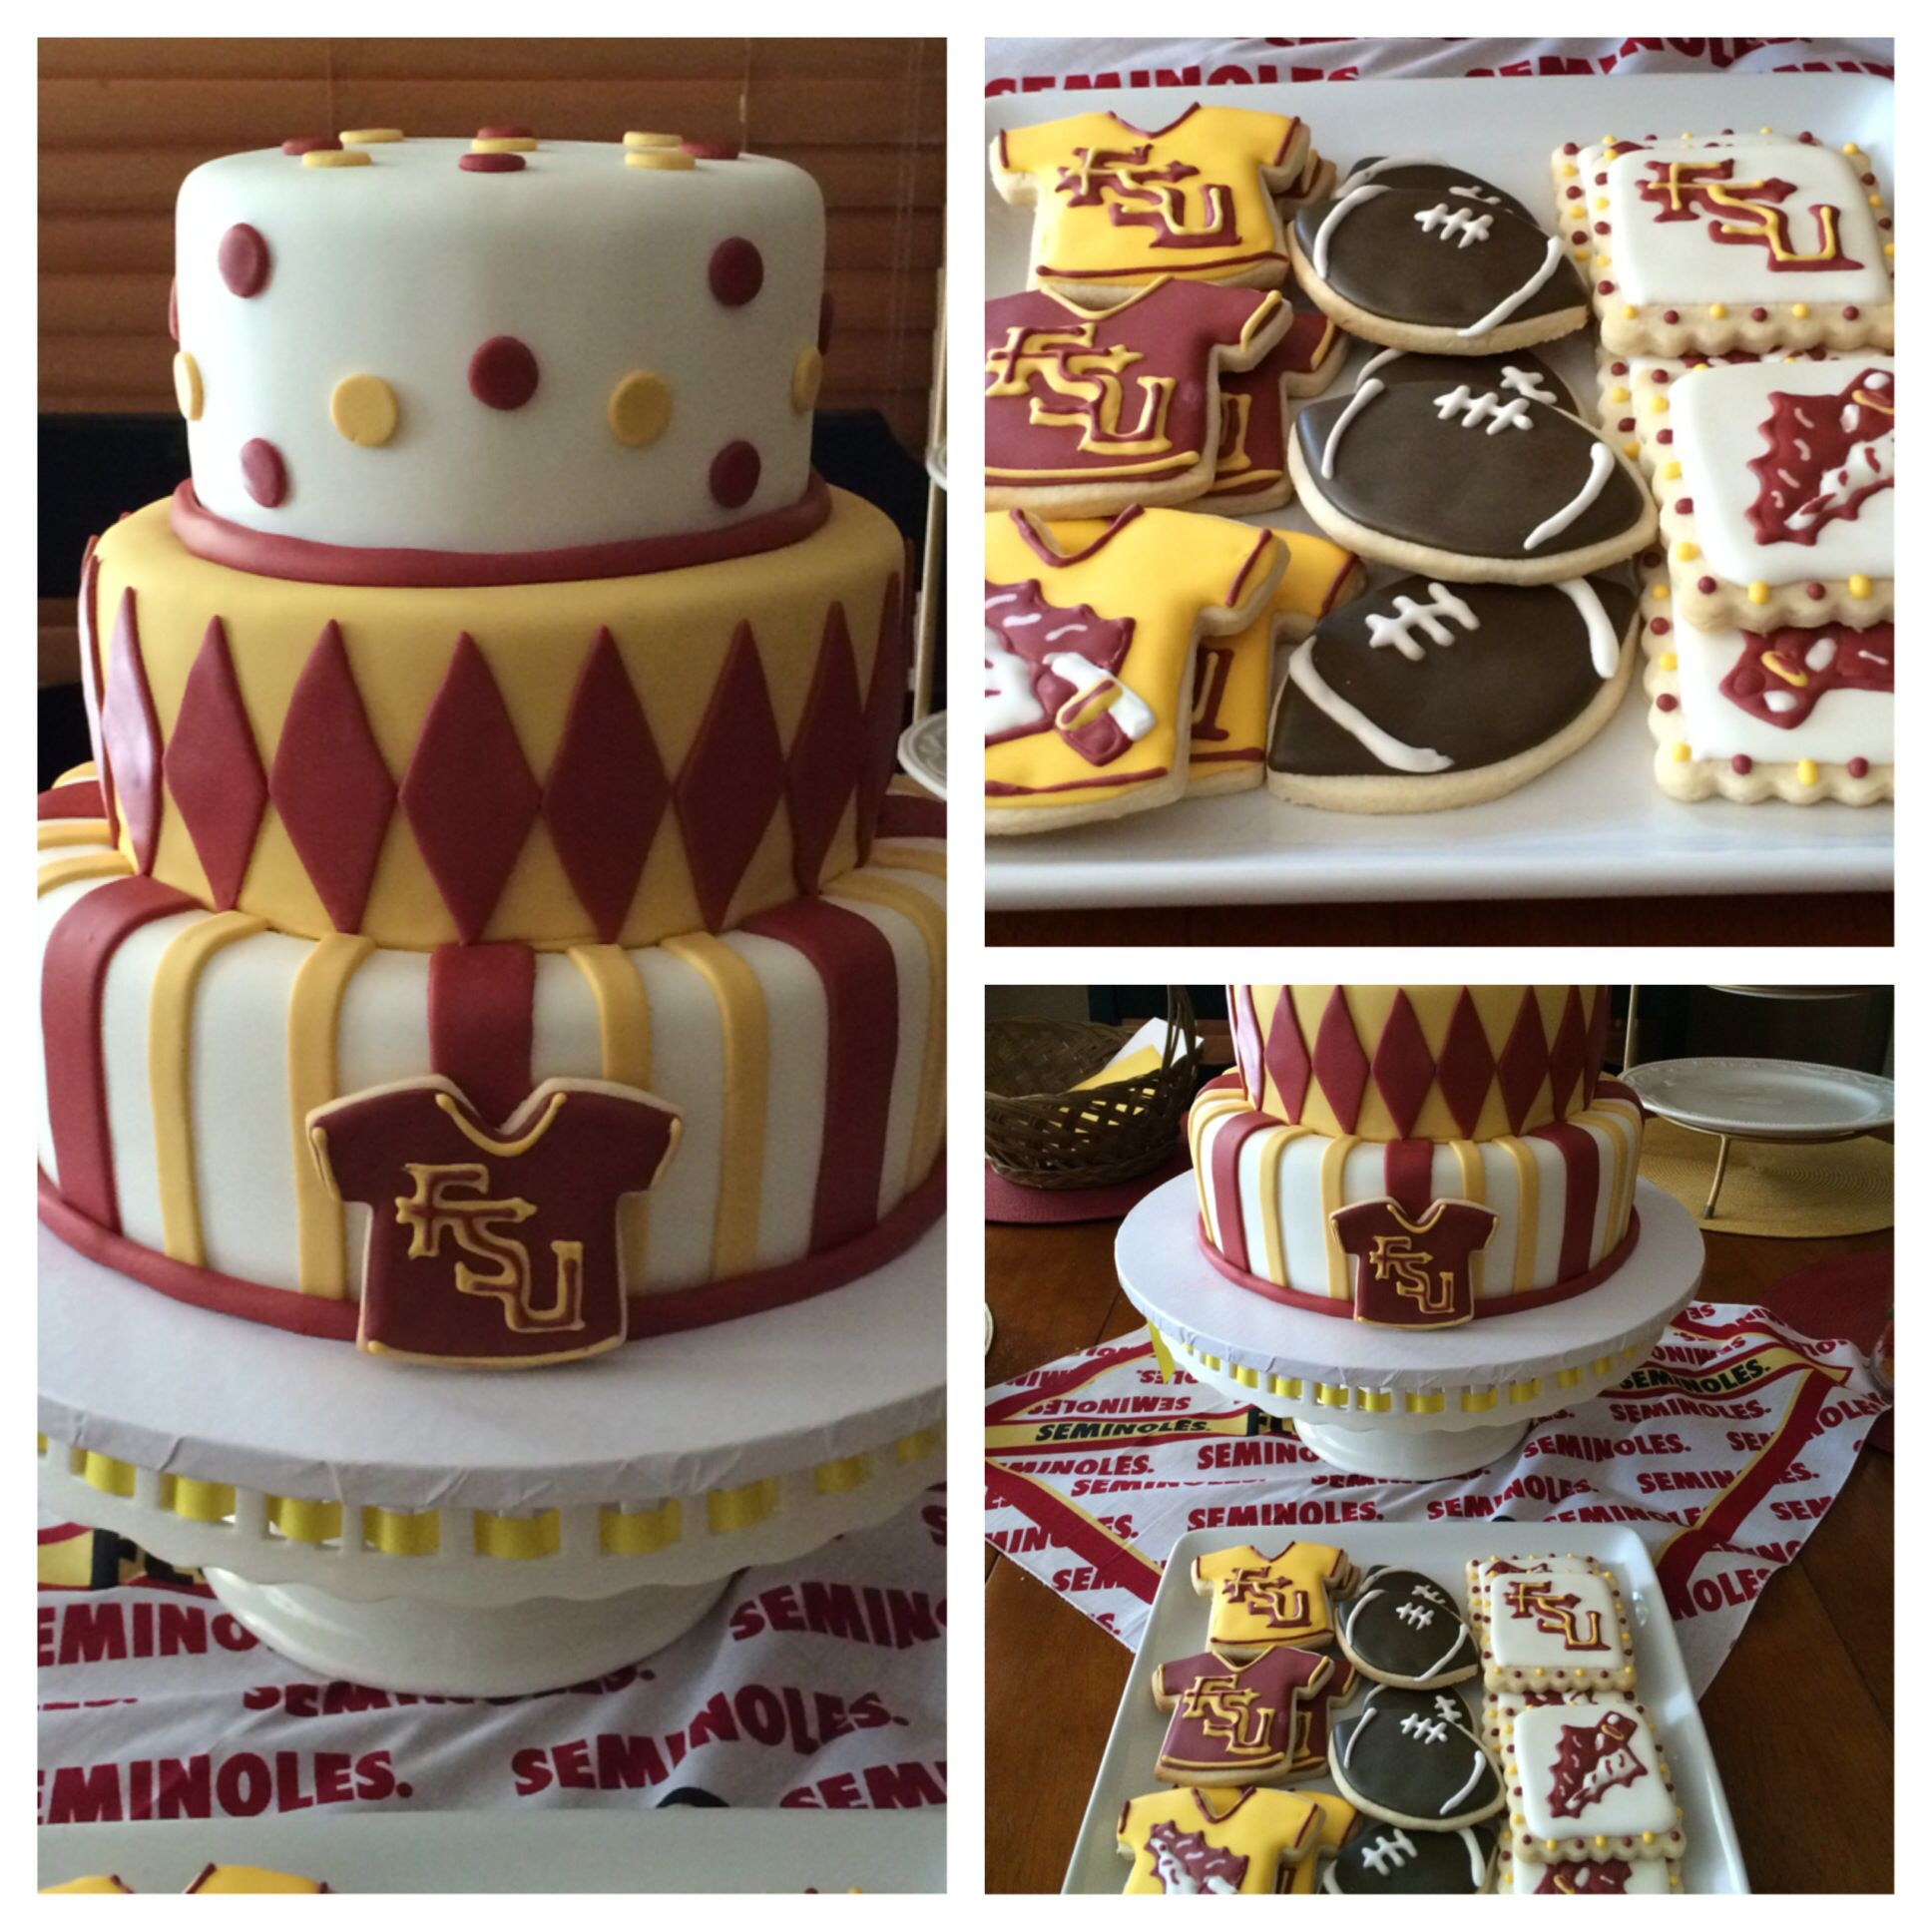 Fsu Cake And Cookies With Images Football Birthday Party